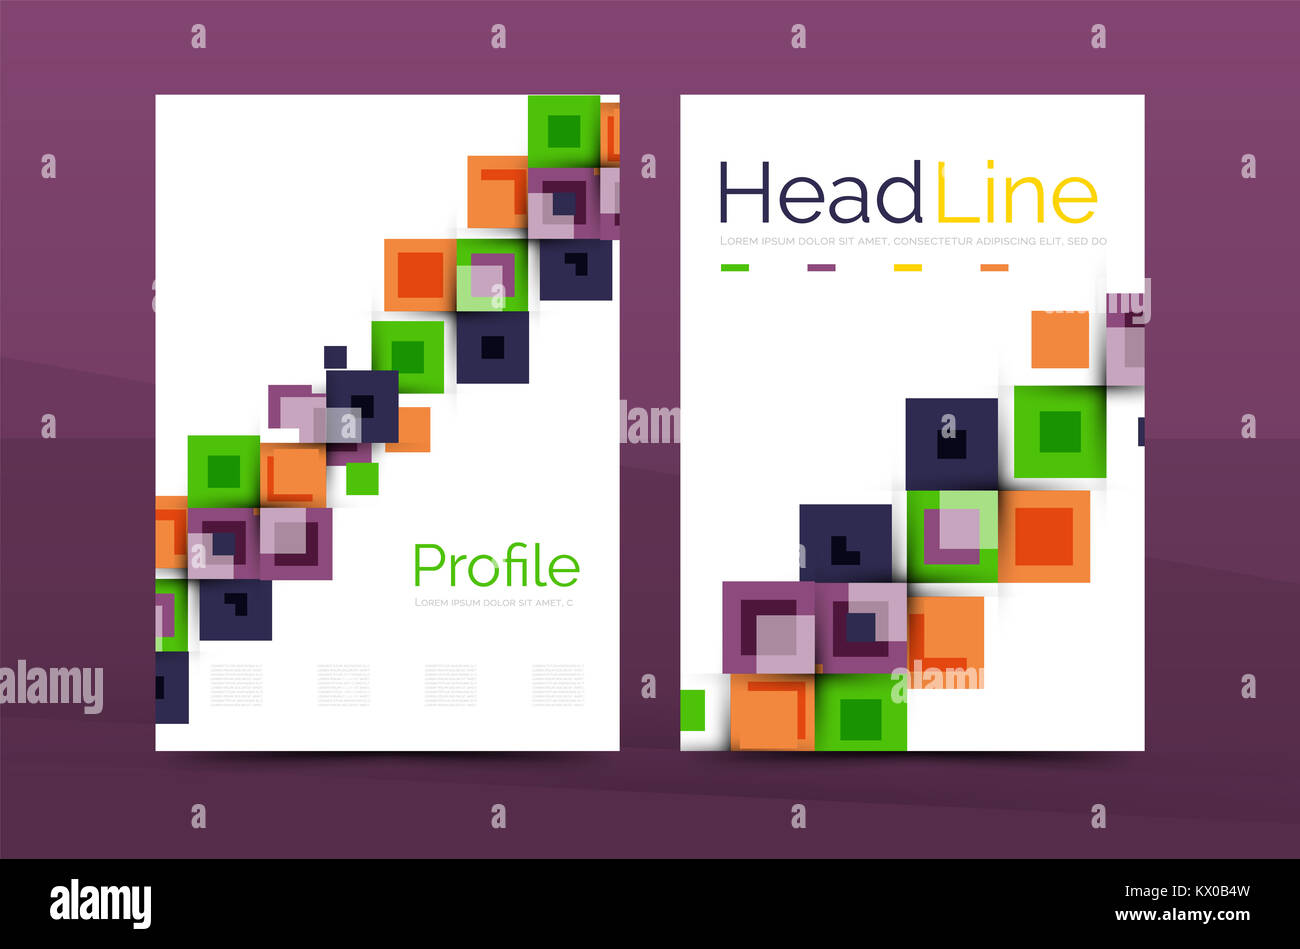 Set of front and back a4 size pages business annual report design set of front and back a4 size pages business annual report design templates geometric square shapes backgrounds illustration accmission Choice Image